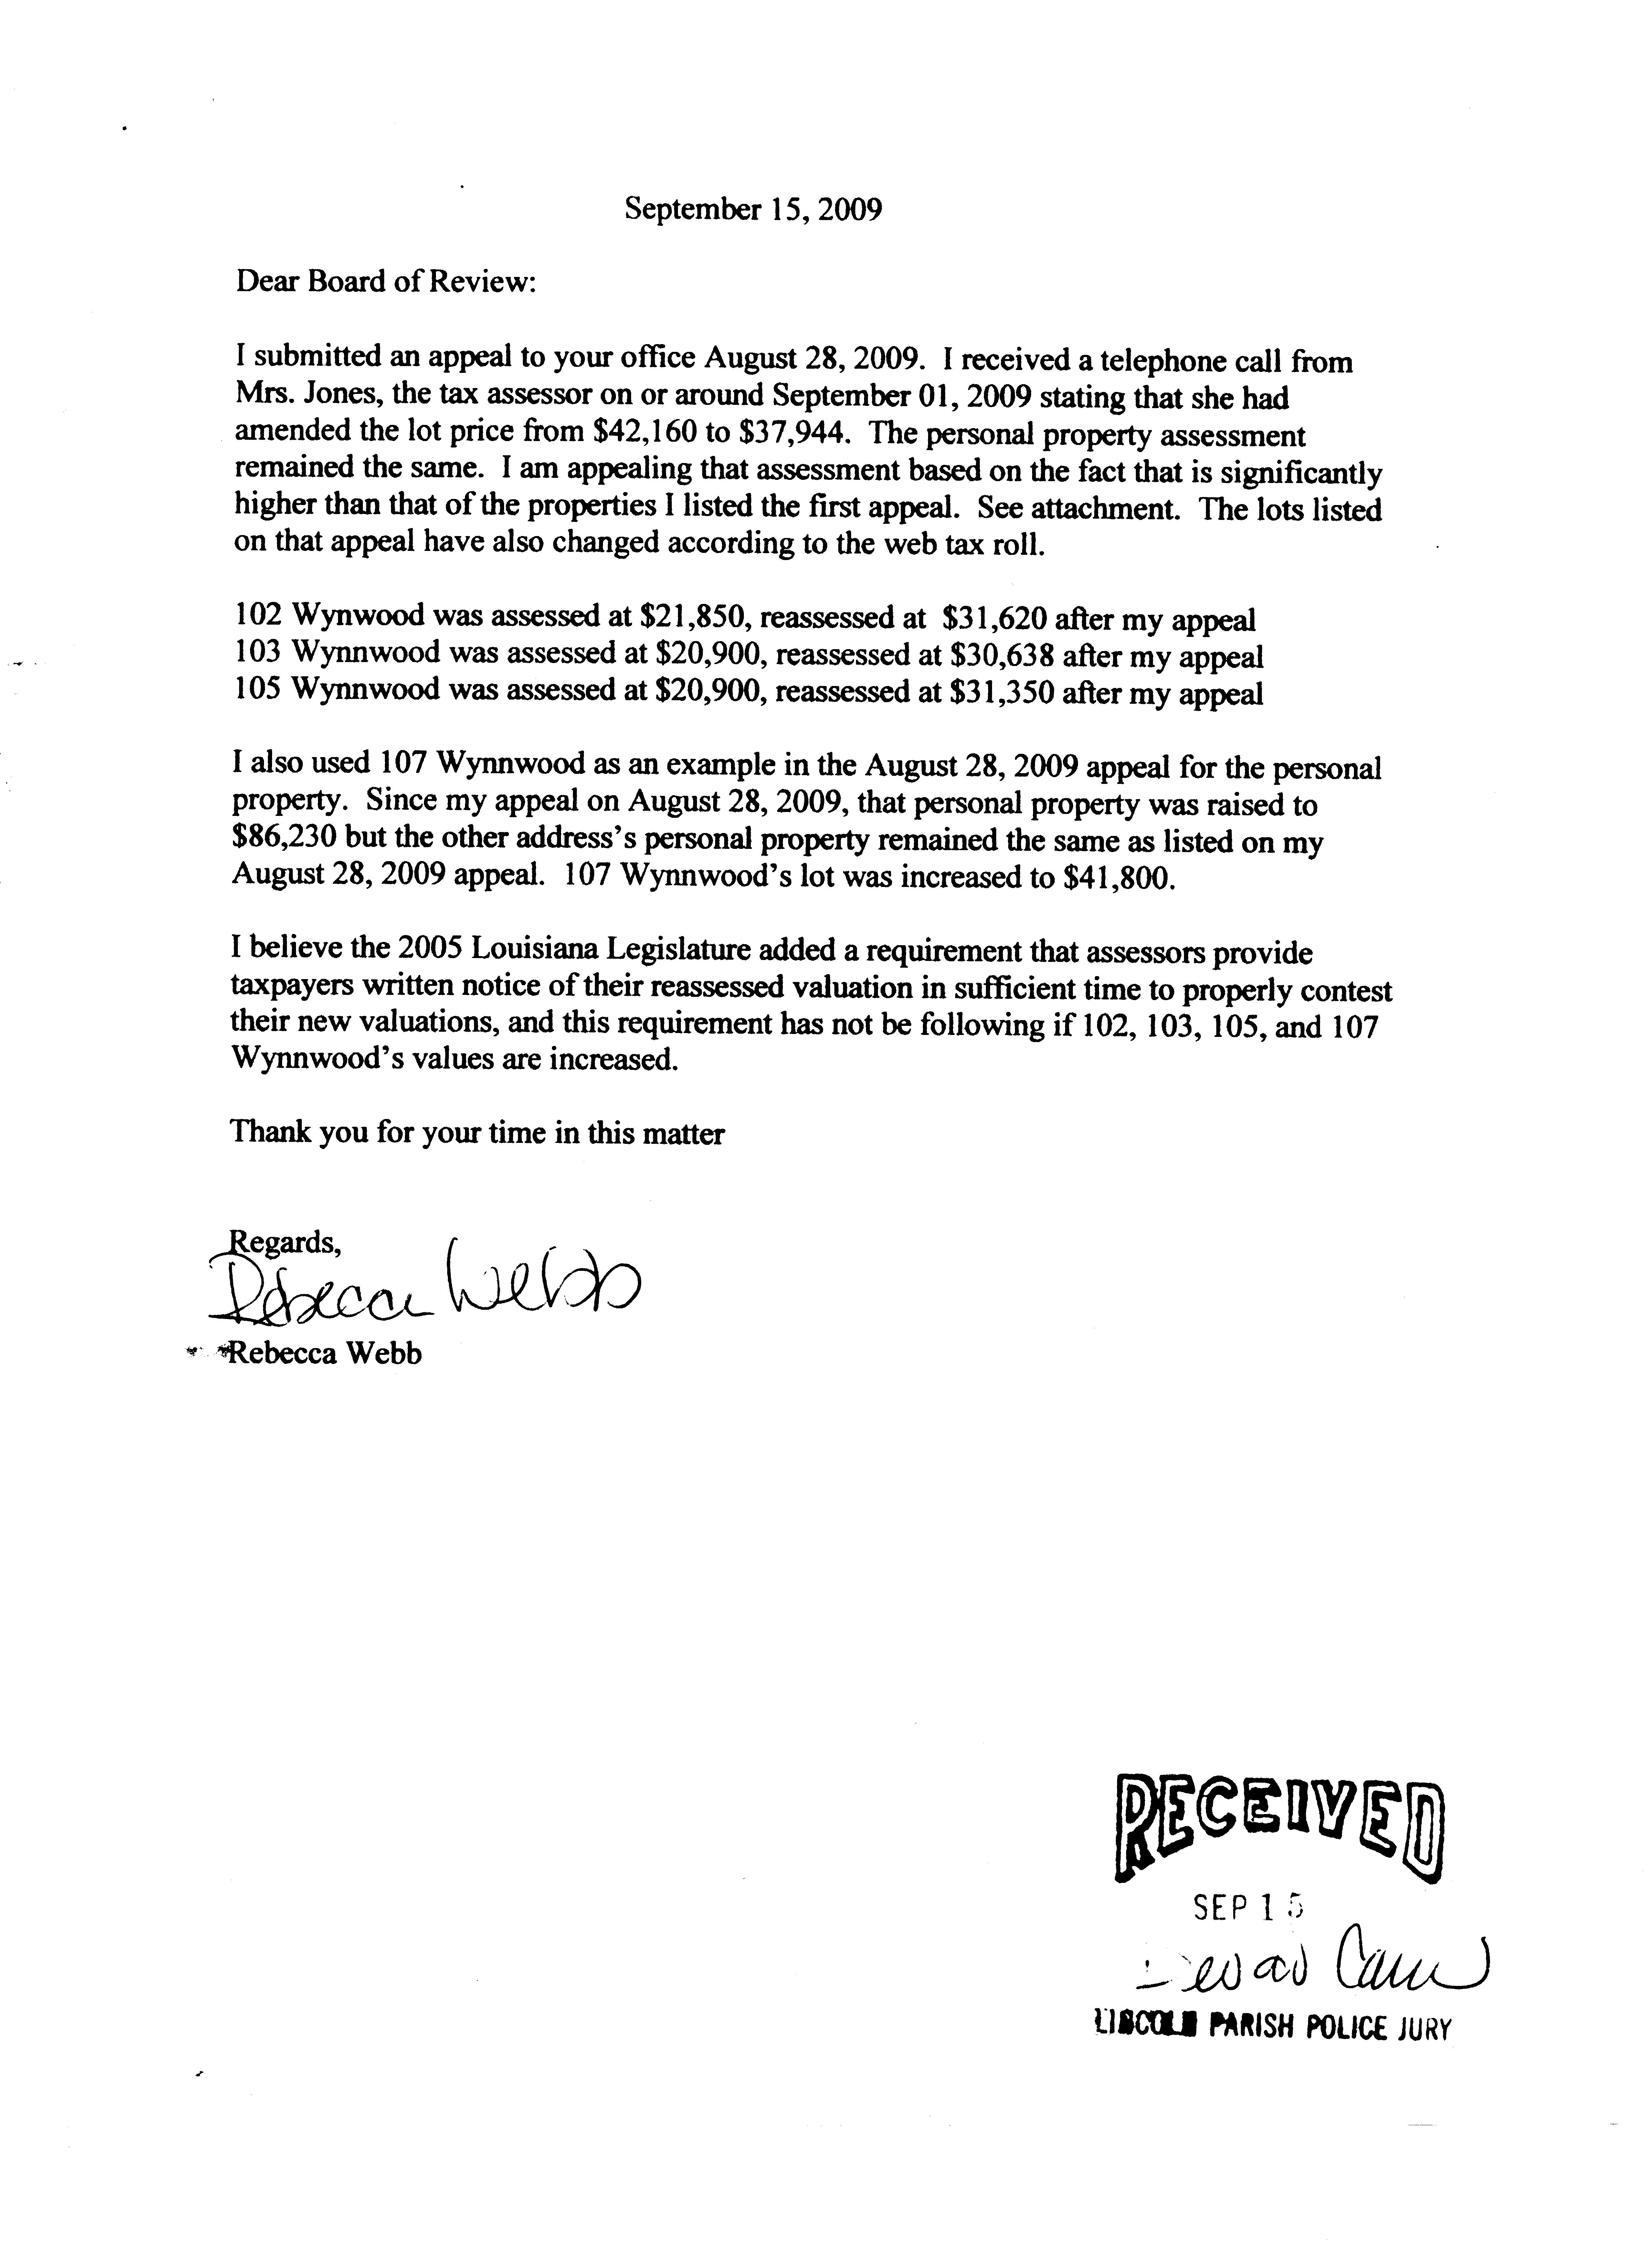 Property Tax Appeal Letter Template - How to Write A Letter Appeal Sample Choice Image Letter format